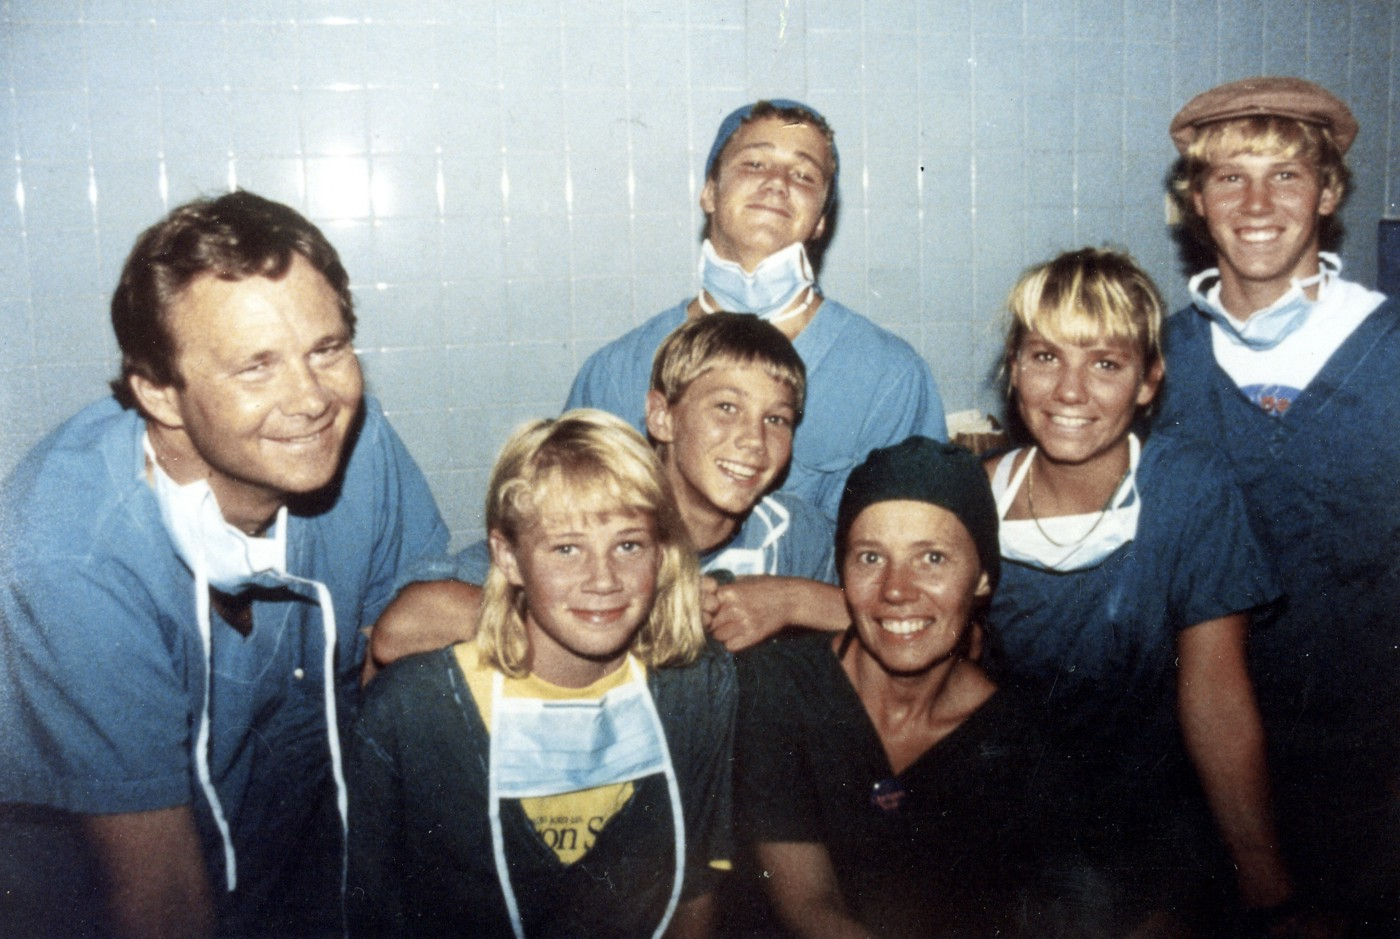 Bill and Kathy Magee pose in scrubs with their five children during a medical mission.